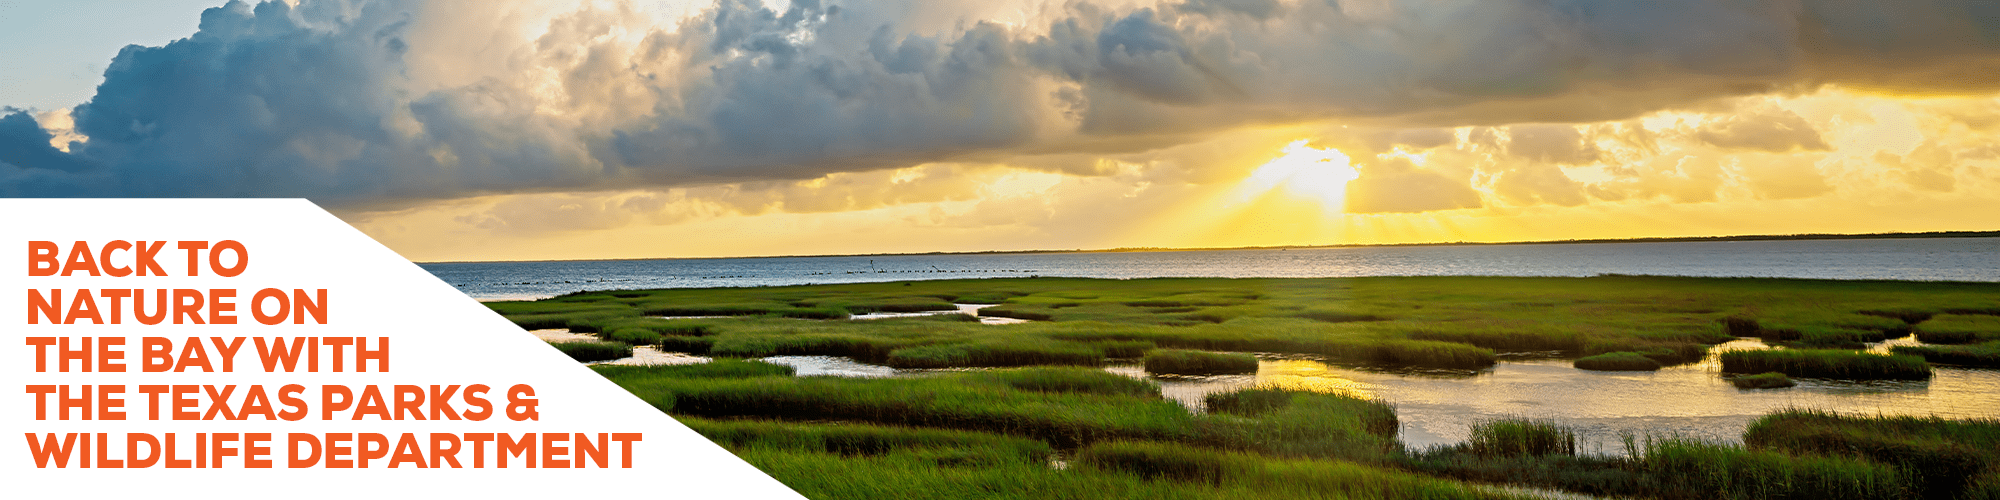 BACK TO NATURE ON THE BAY WITH THE TEXAS PARKS & WILDLIFE DEPARTMENT